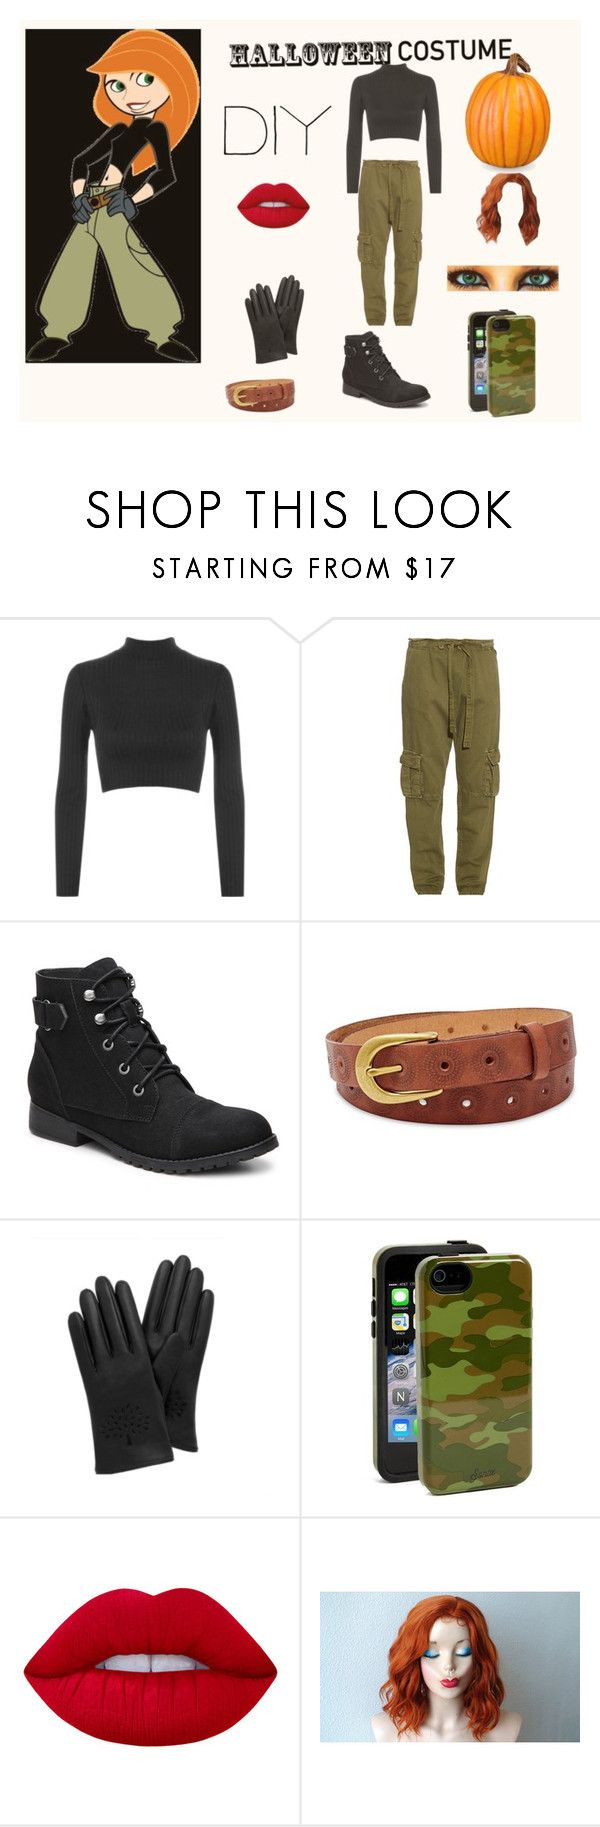 """Kim Possible Costume"" by anotherstudent on Polyvore featuring WearAll, Current/Elliott, Madden Girl, FOSSIL, Mulberry, Sonix, Lime Crime, Improvements, halloweencostume and DIYHalloween"